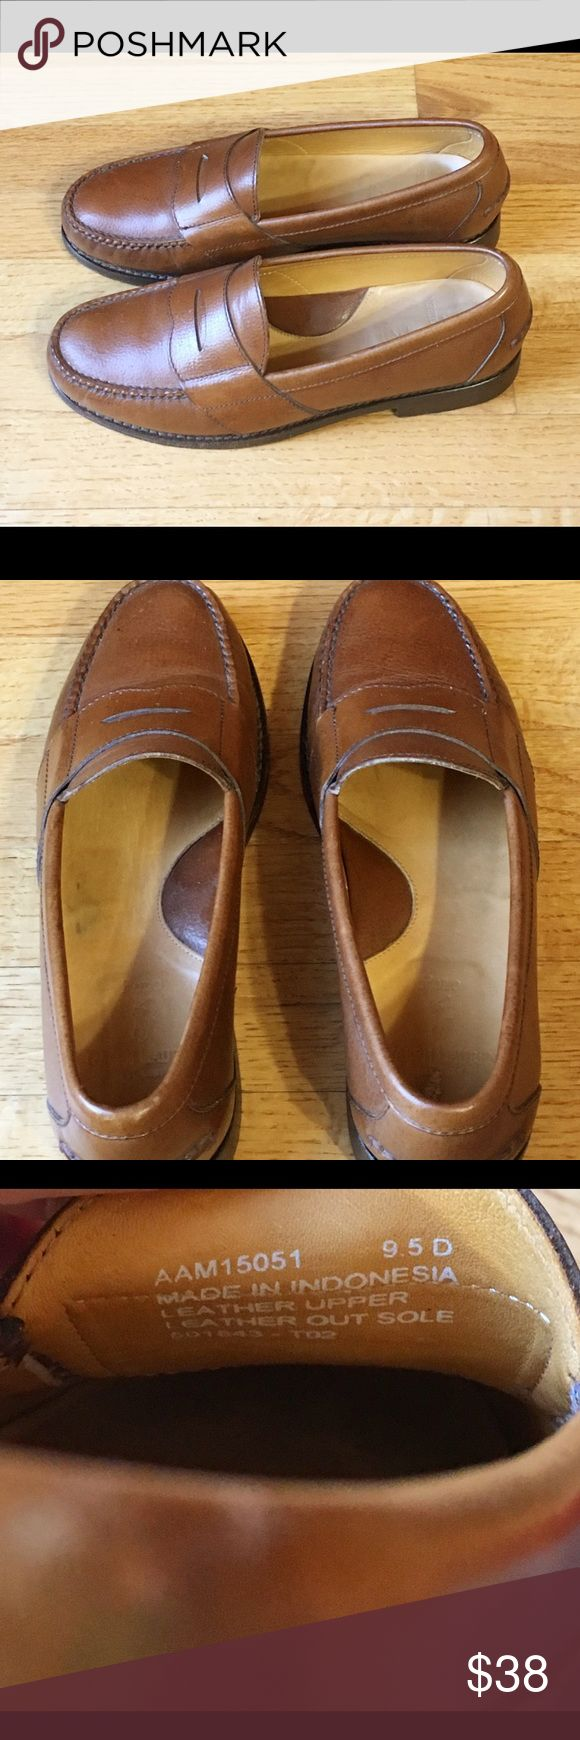 Polo Men's brown leather shoes, size 9.5D Polo Men's Brown Leather Shoe Loafers, size 9.5D, leather soles.  Excellent condition Polo by Ralph Lauren Shoes Loafers & Slip-Ons